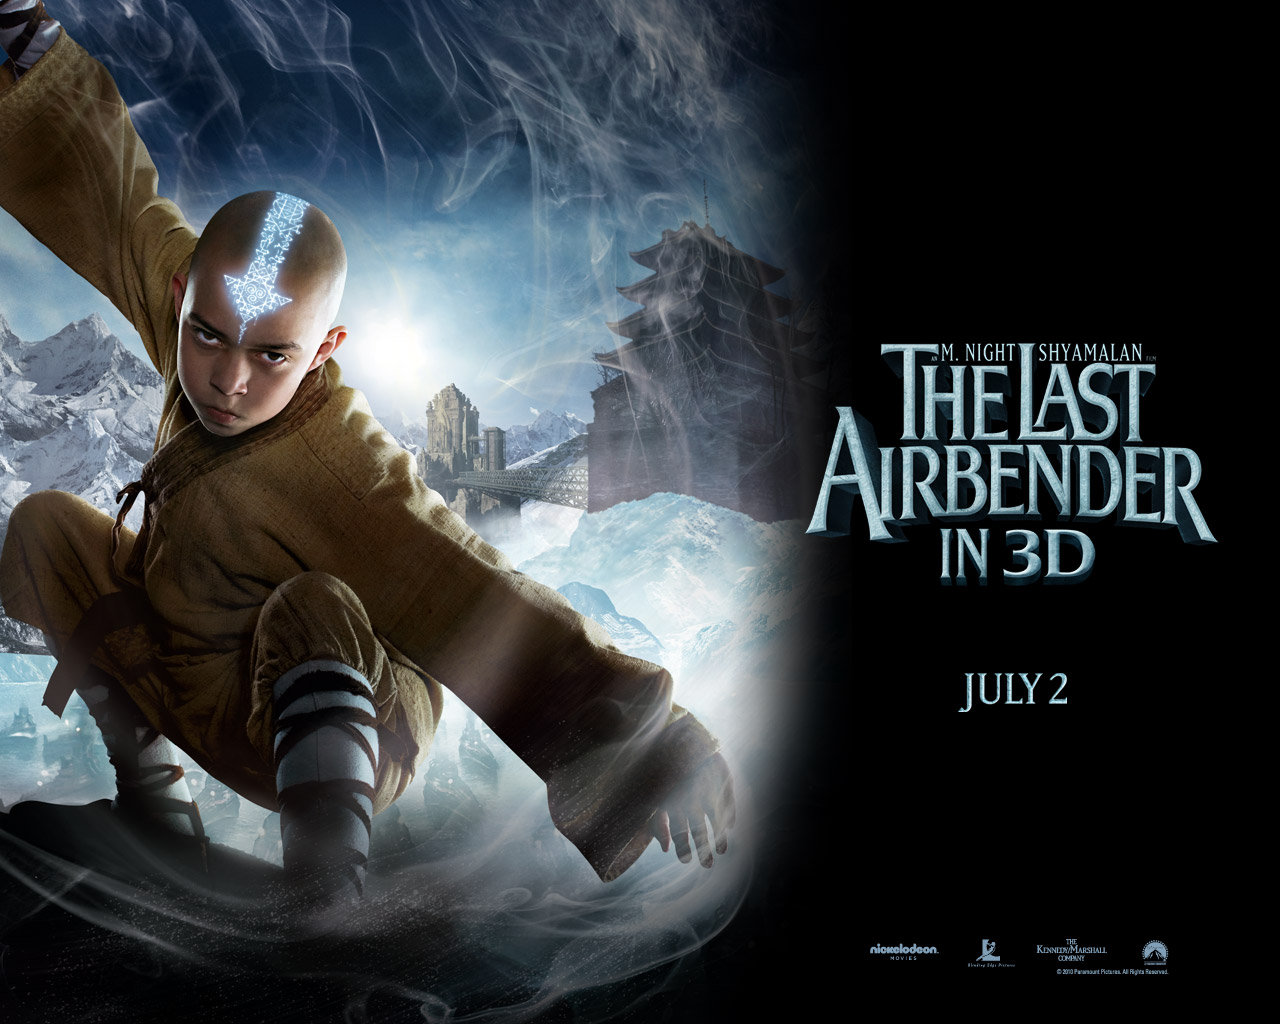 Avatar The Last Airbender Movie 2 18 Widescreen Wallpaper ...The Last Airbender 2 Movie